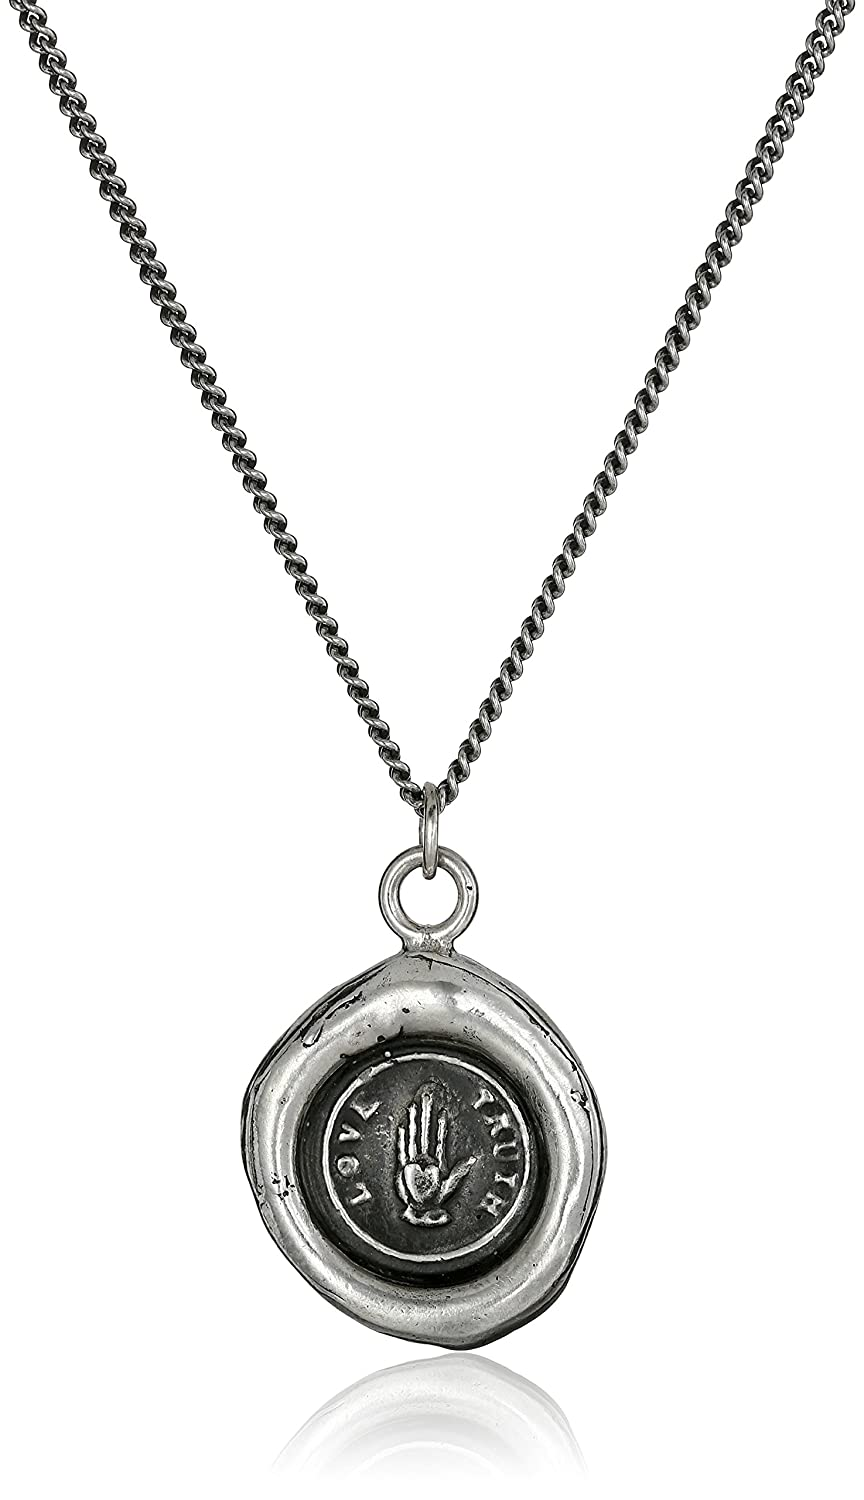 "CDM product Pyrrha""talisman"" Sterling Silver Love Truth Necklace, 18"" big image"